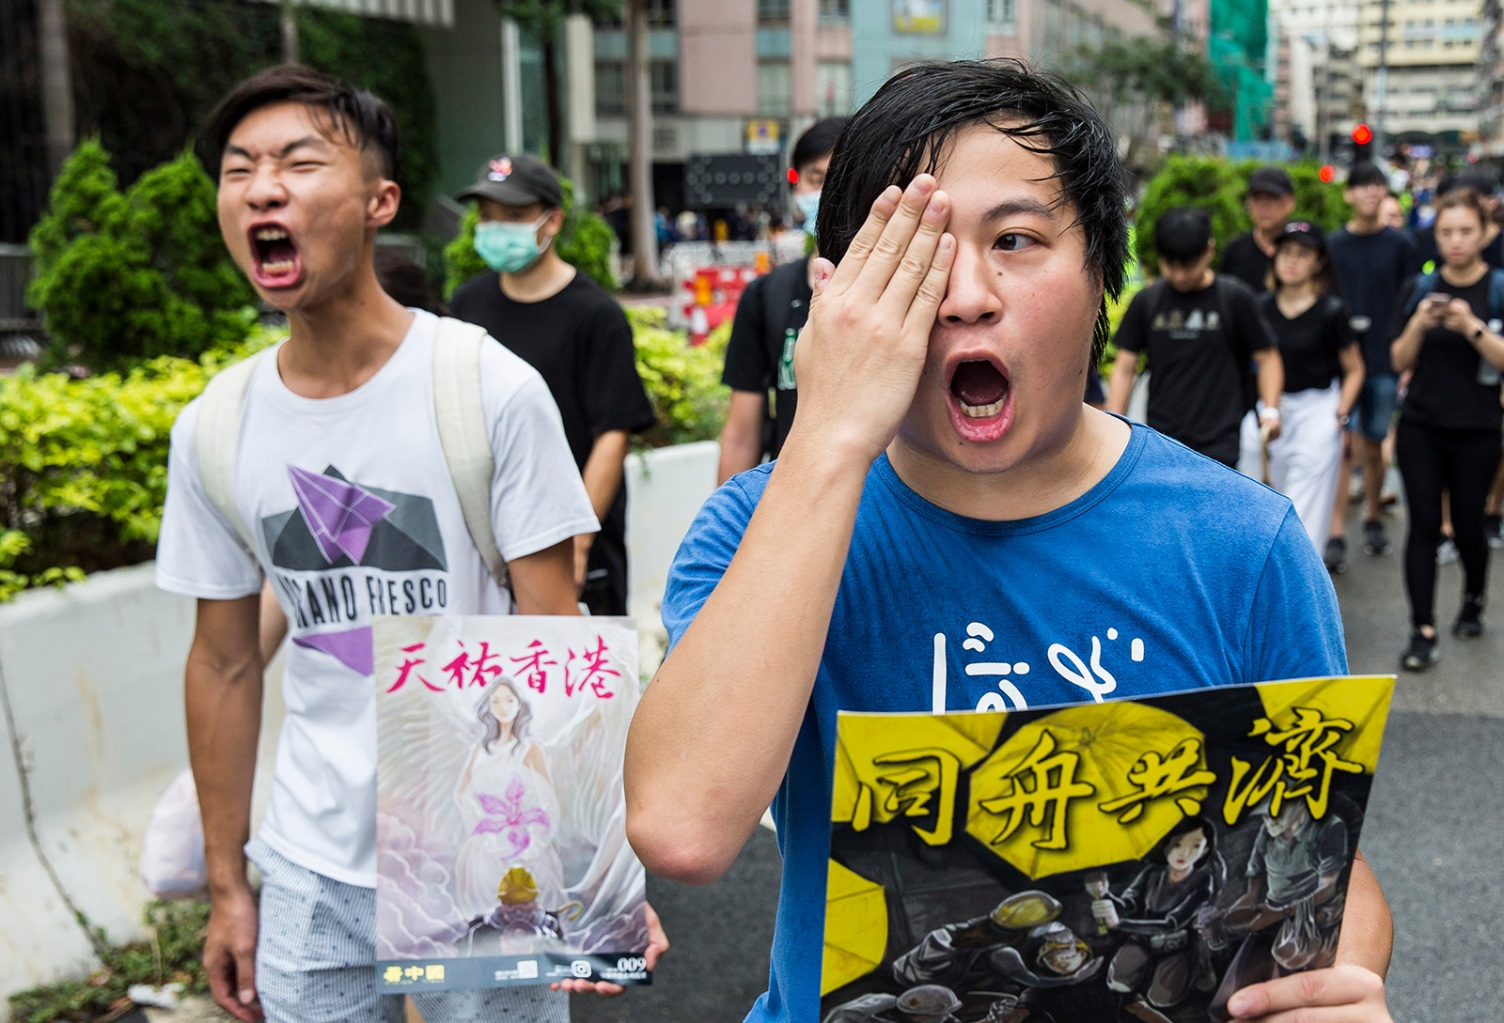 Anti-government protesters attend a rally in the Hung Hom district of Hong Kong on Aug. 17. ISAAC LAWRENCE/AFP/Getty Images